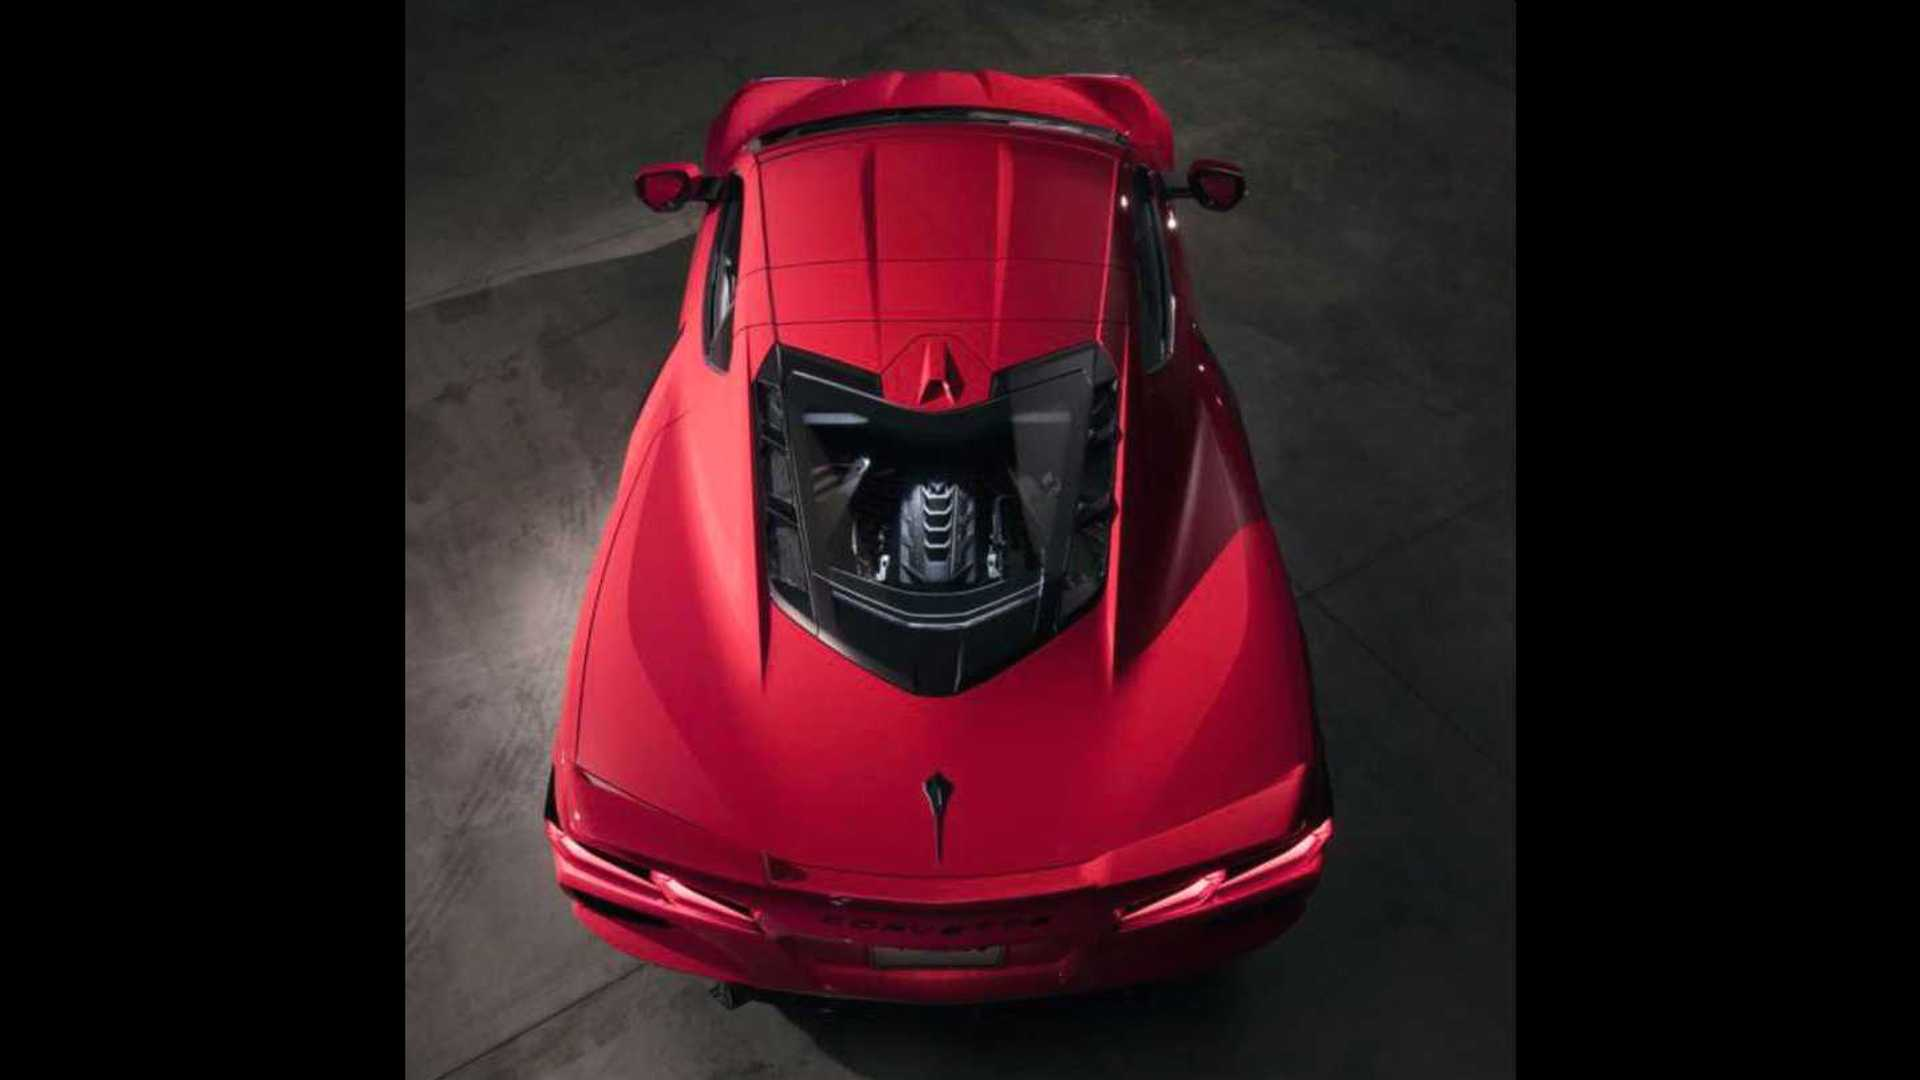 Chevrolet Reveals Corvette C8 Stingray - First Mid-Engine 'Vette - GTspirit